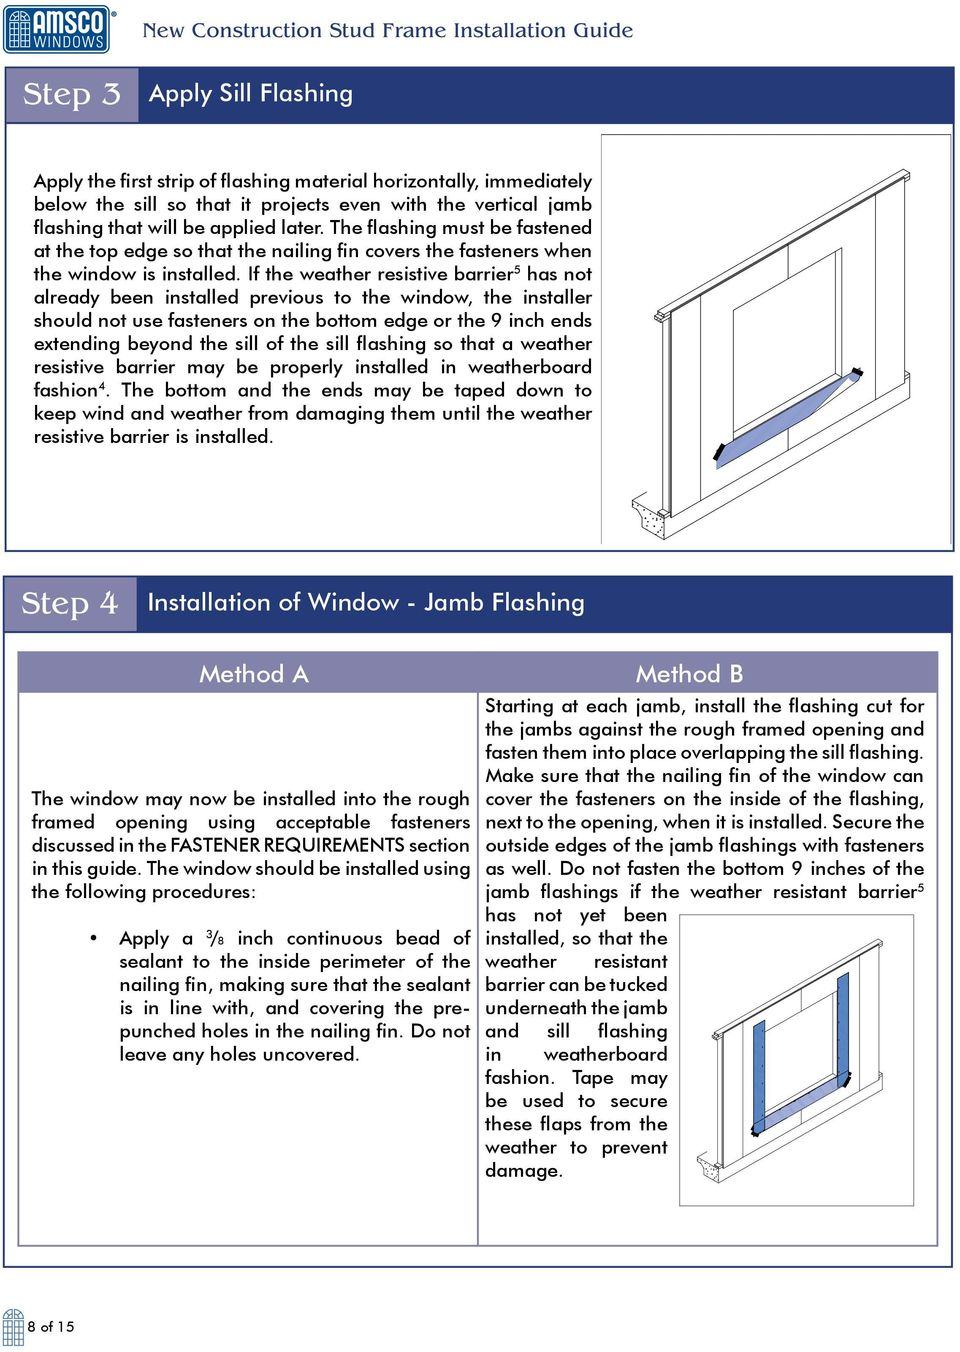 If the weather resistive barrier 5 has not already been installed previous to the window, the installer should not use fasteners on the bottom edge or the 9 inch ends extending beyond the sill of the